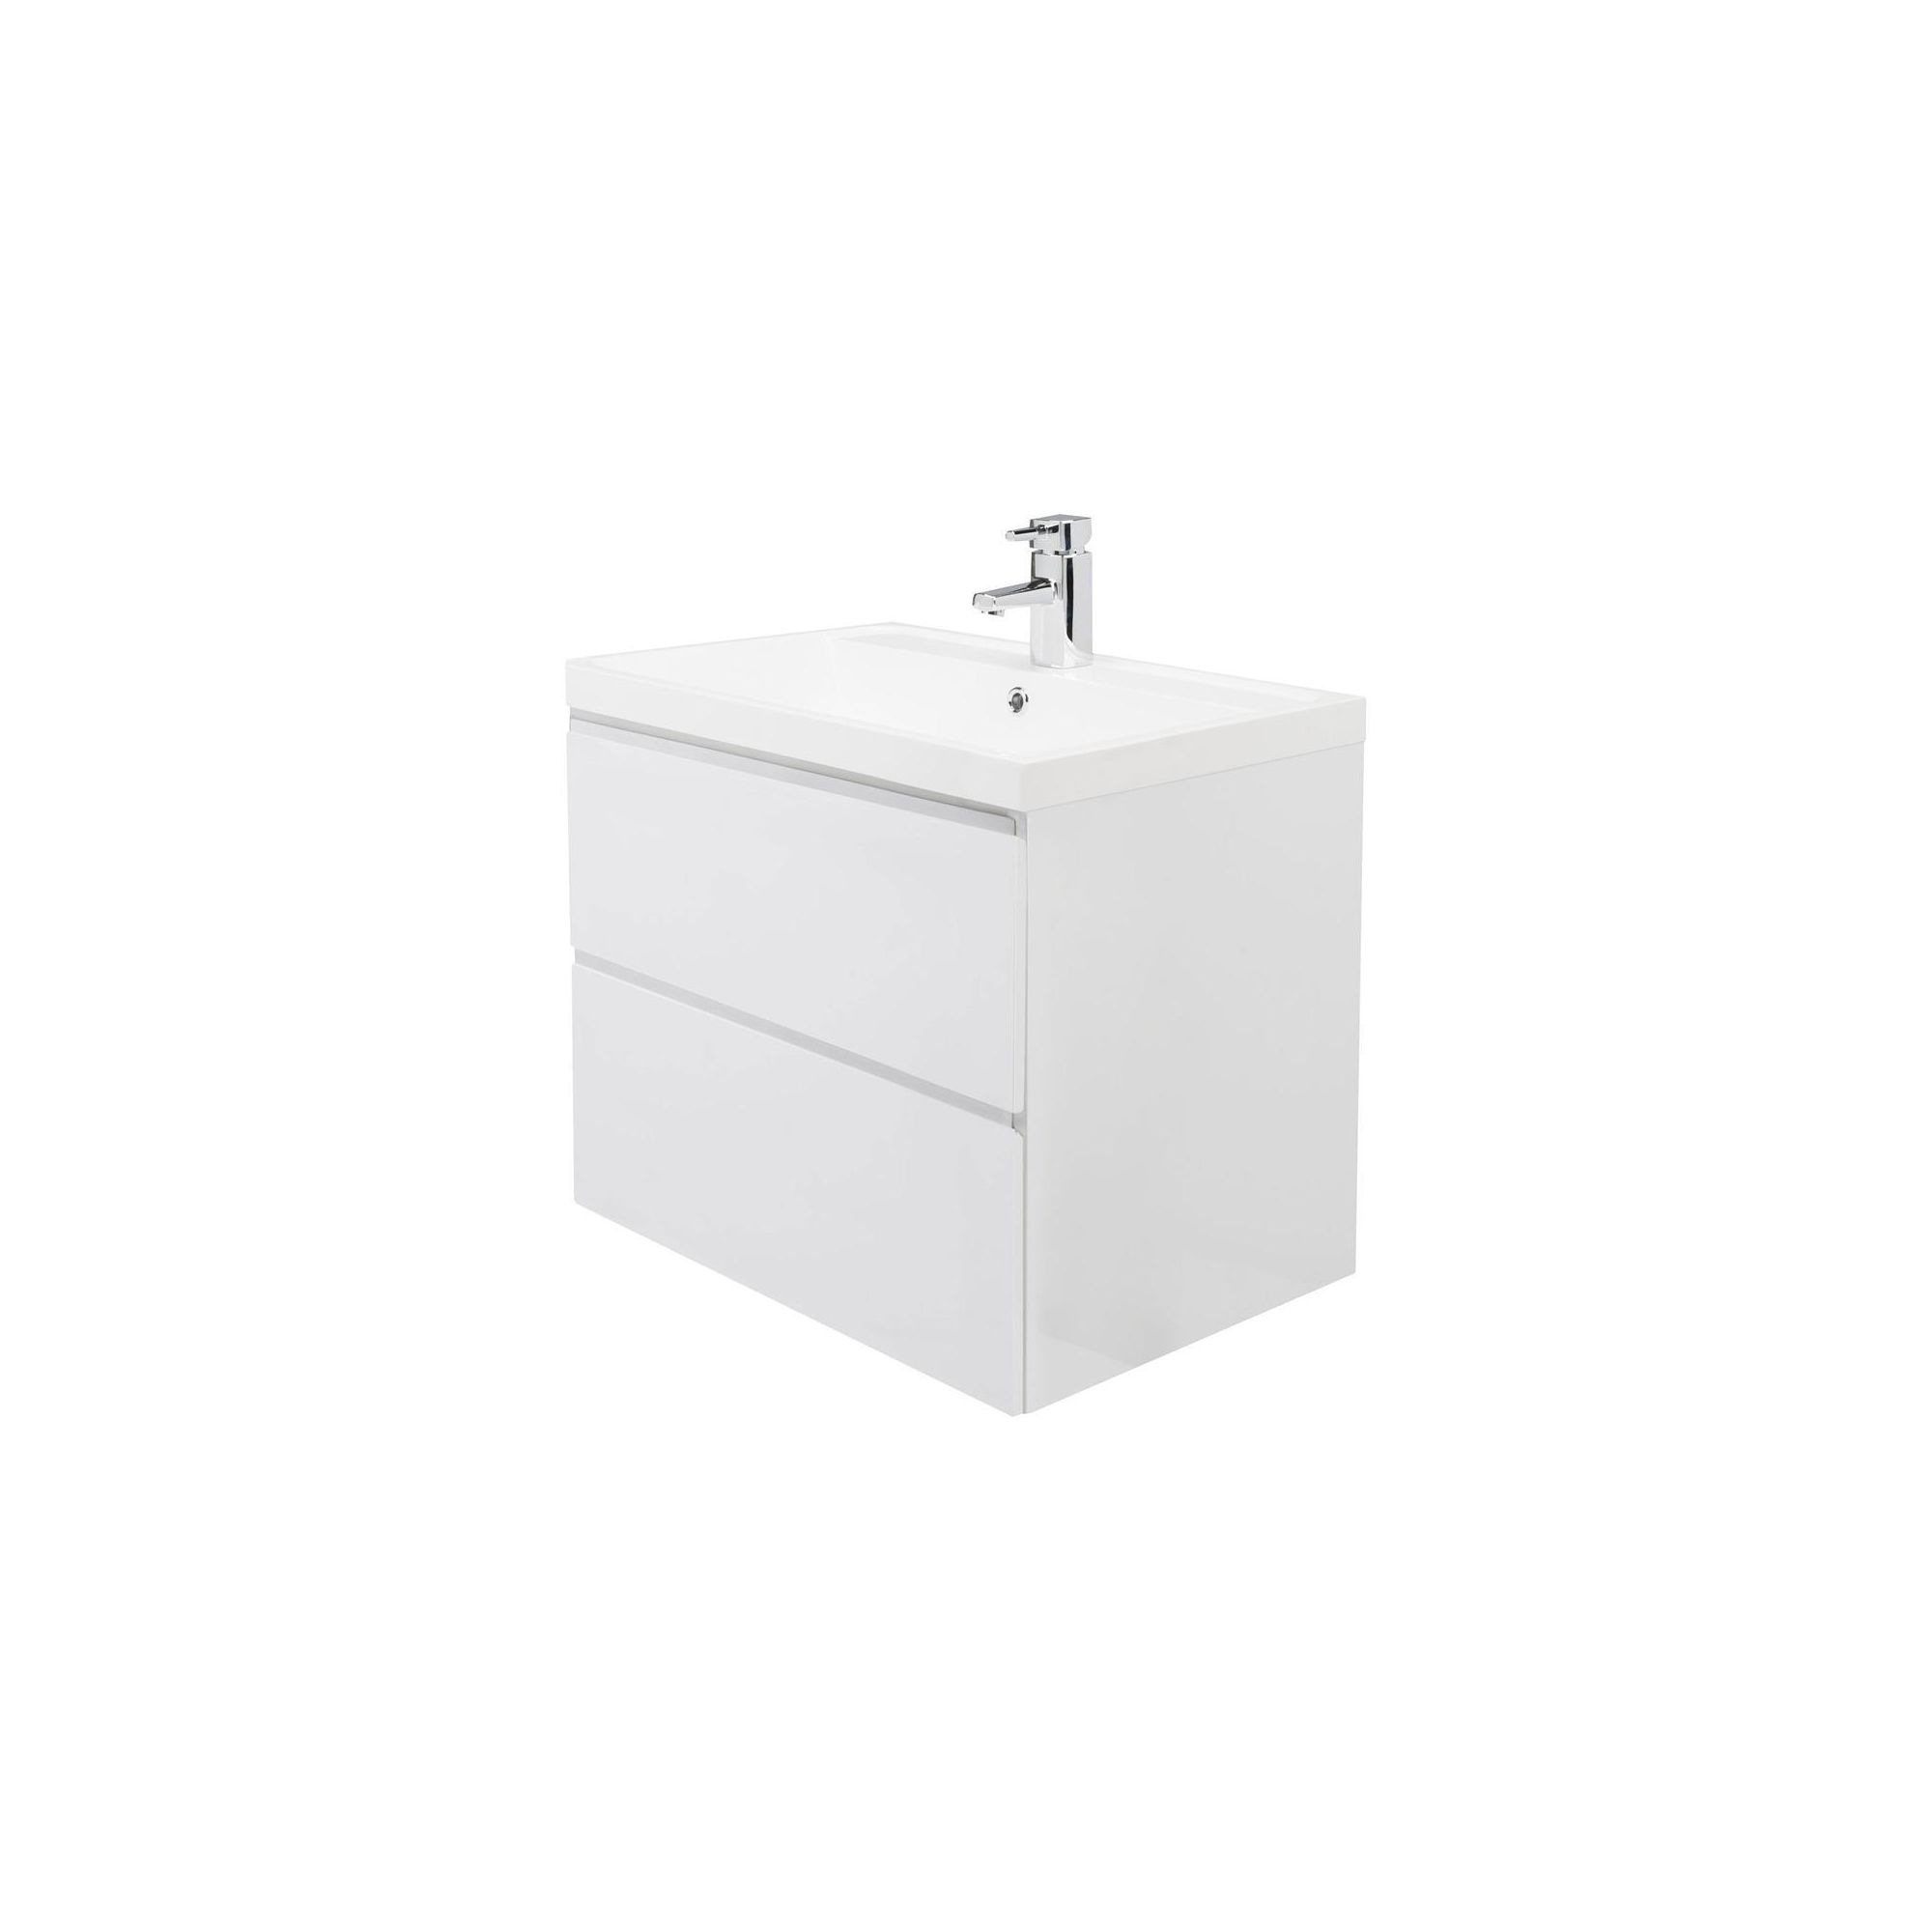 Premier Tribute 600 Wall Hung 2 Drawer Basin and Cabinet